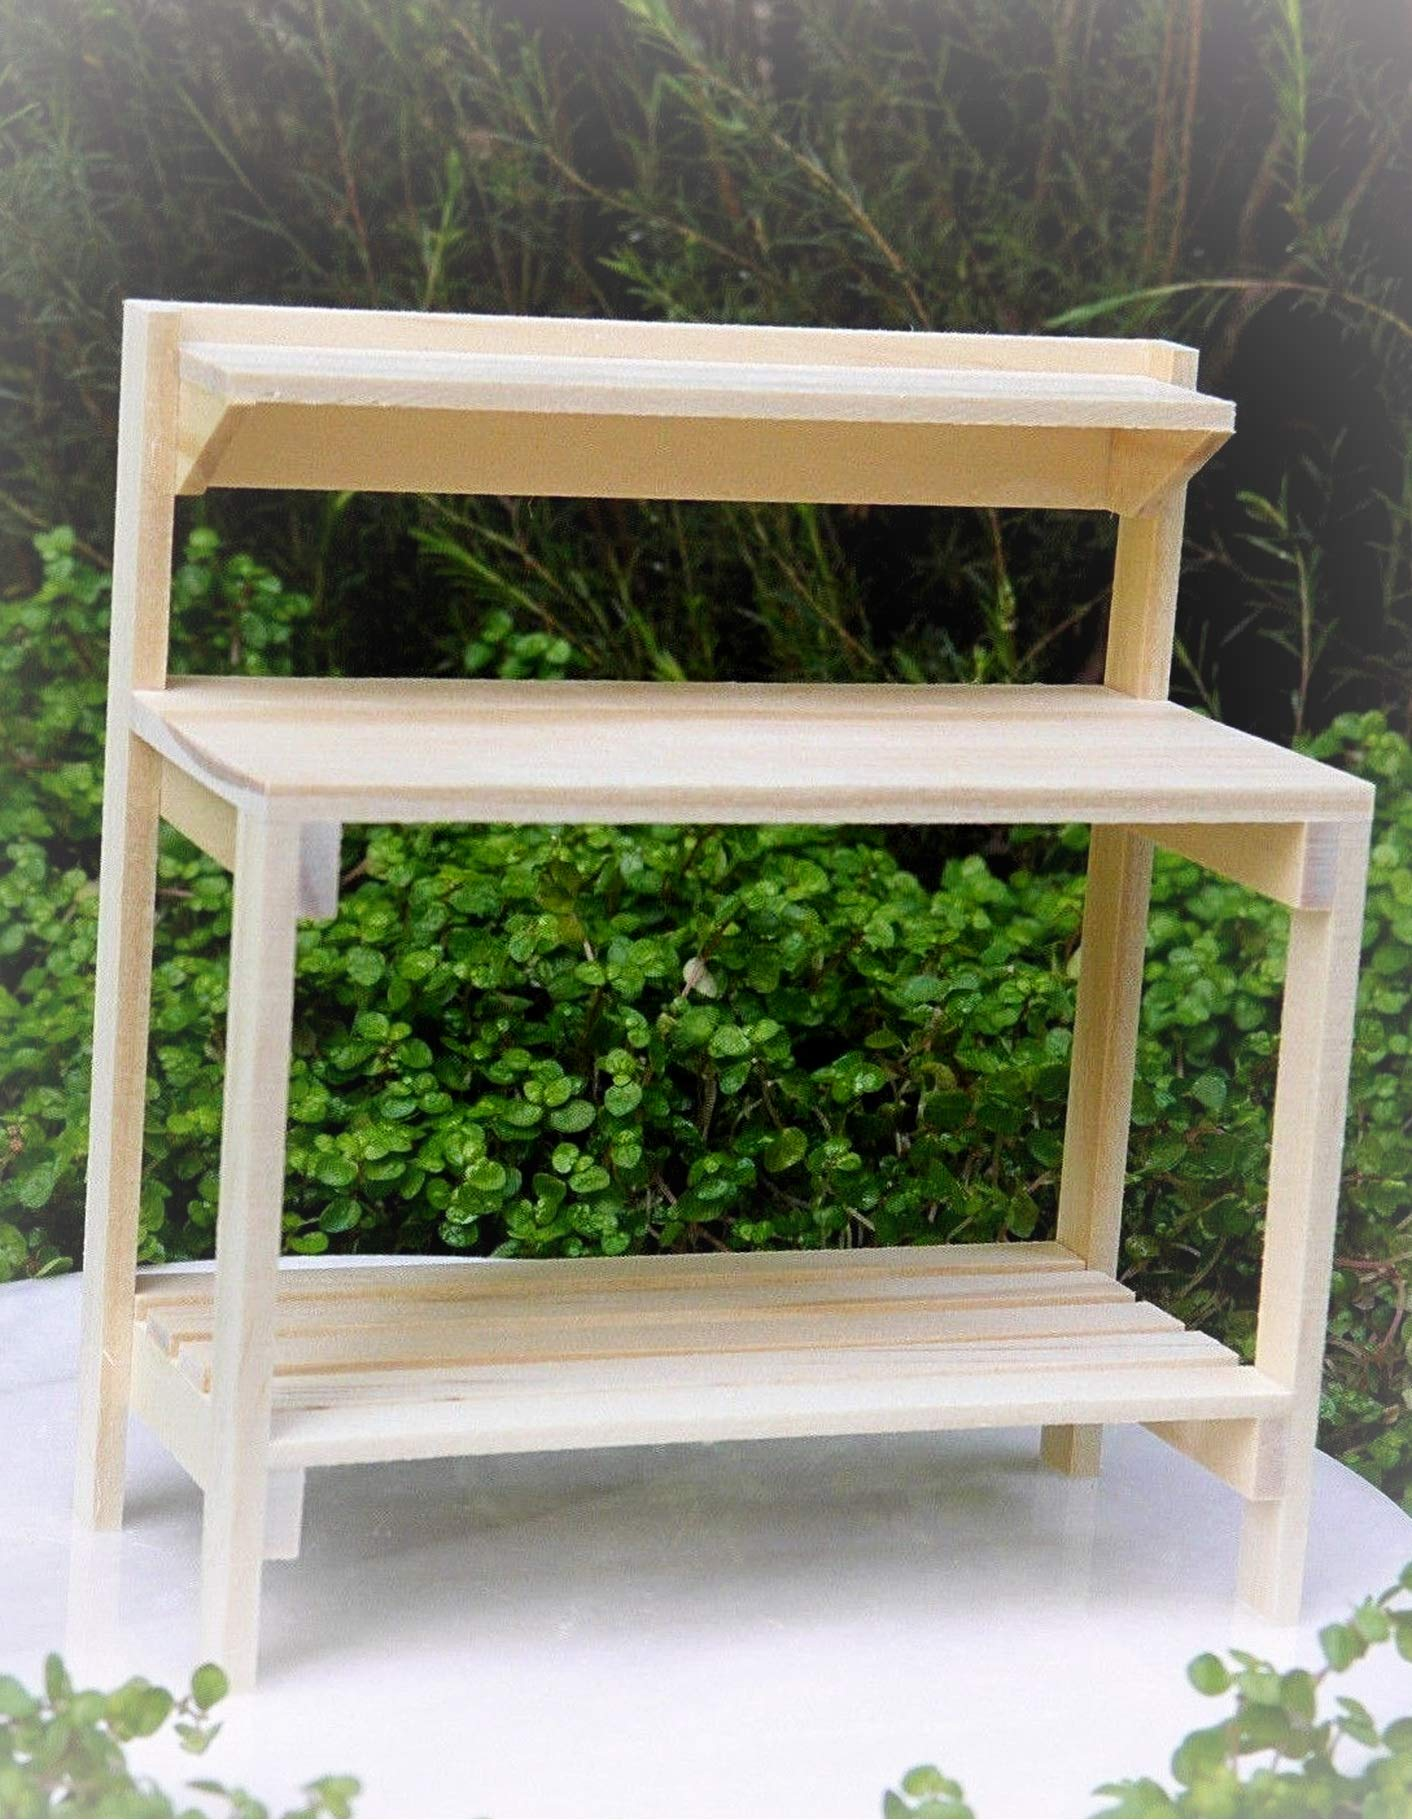 Dollhouse Furniture Natural Wood Potting Table Workbench - Miniature Magic Scene Supplies Your Fairy Garden - Outdoor House Decor